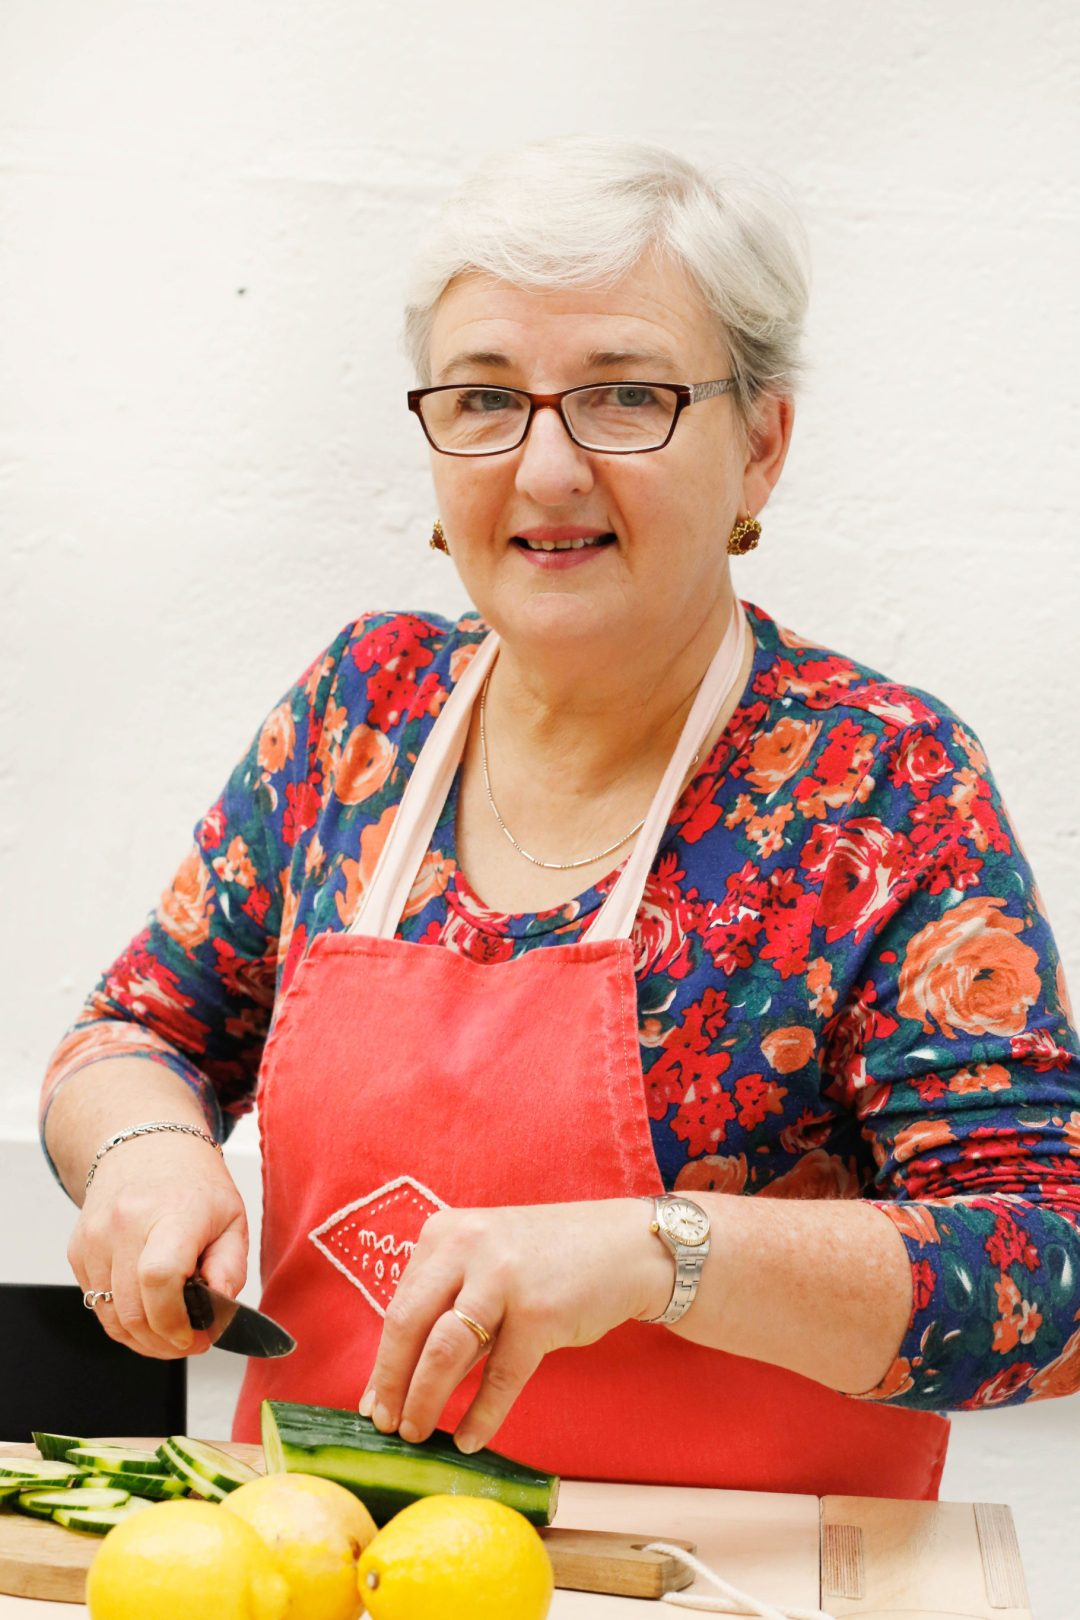 Mamie Foodie interview Makeitnow.fr